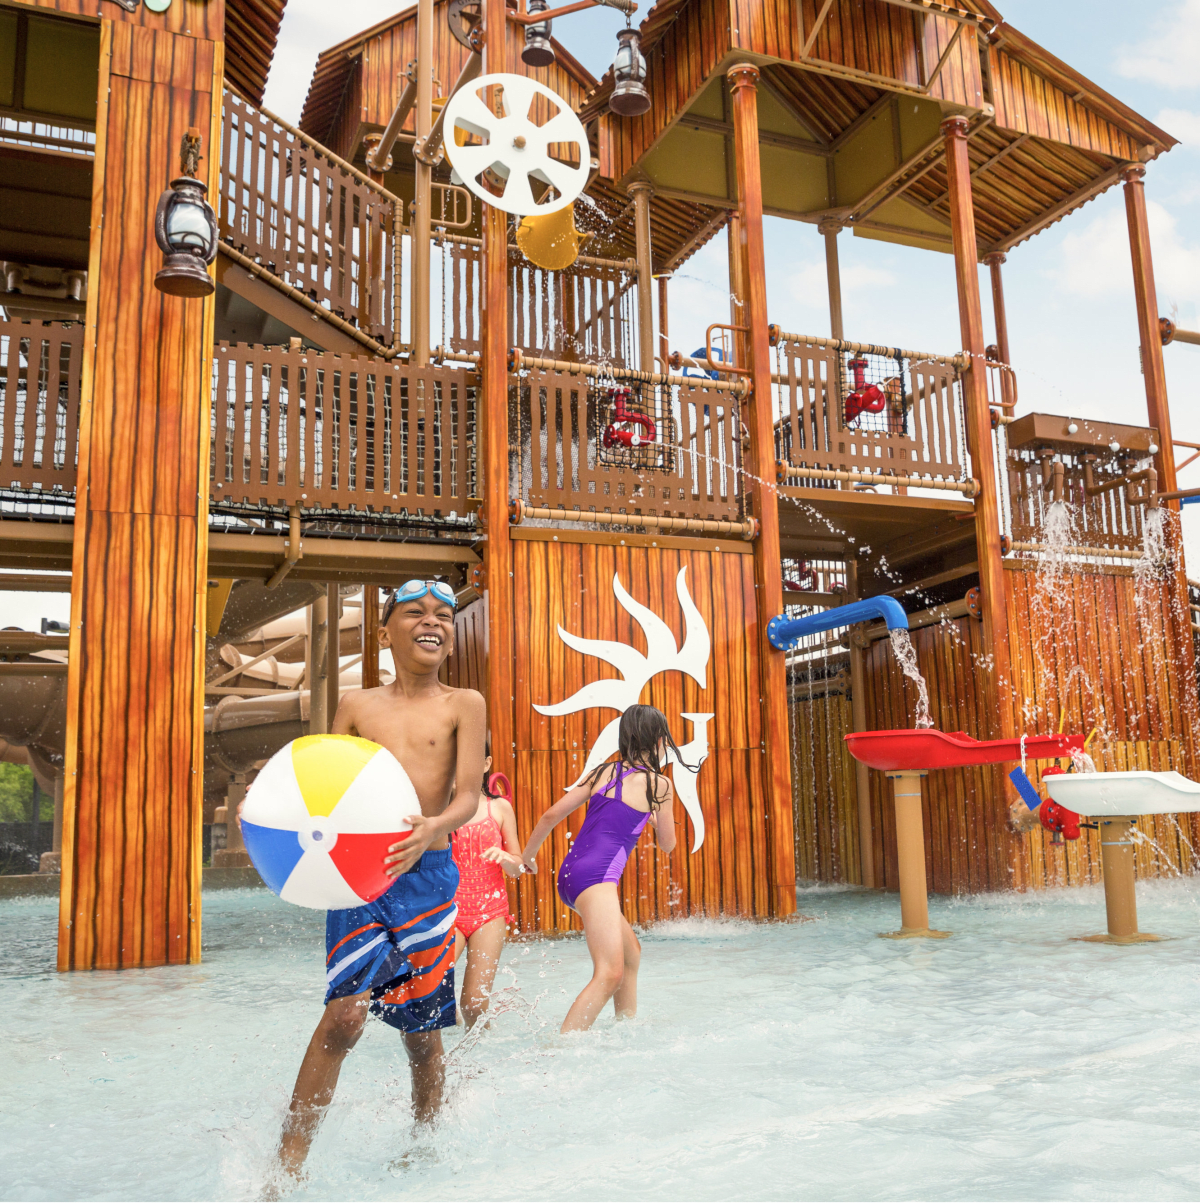 Paradise Springs water play structure at Gaylord Texan Resort